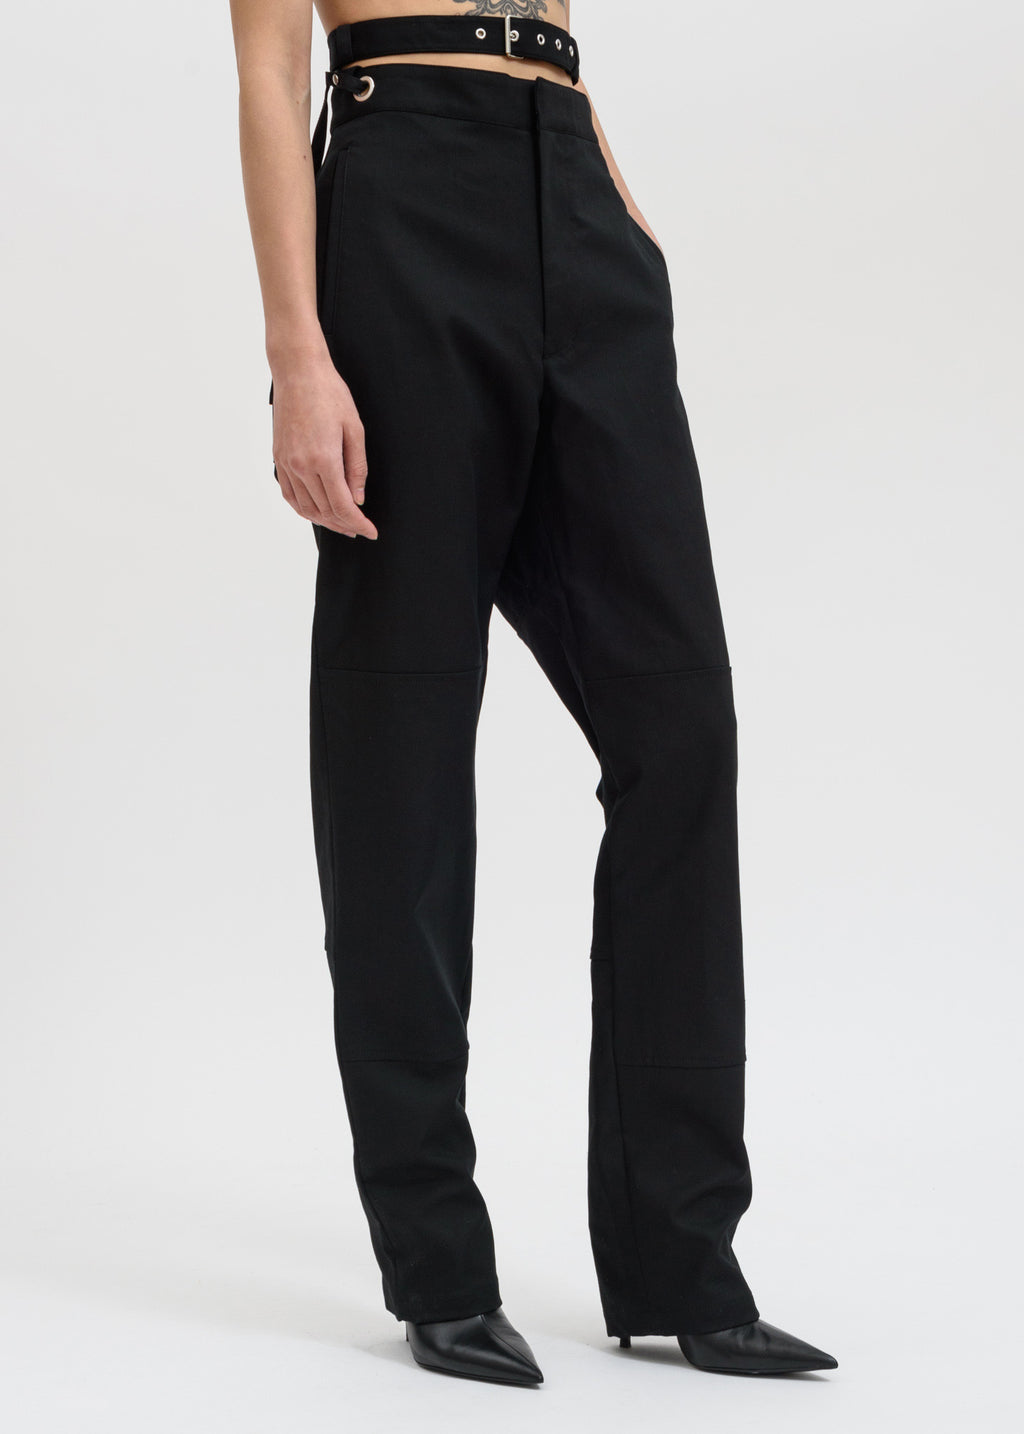 Ambush, Black Waist Strap Pants, 017 Shop